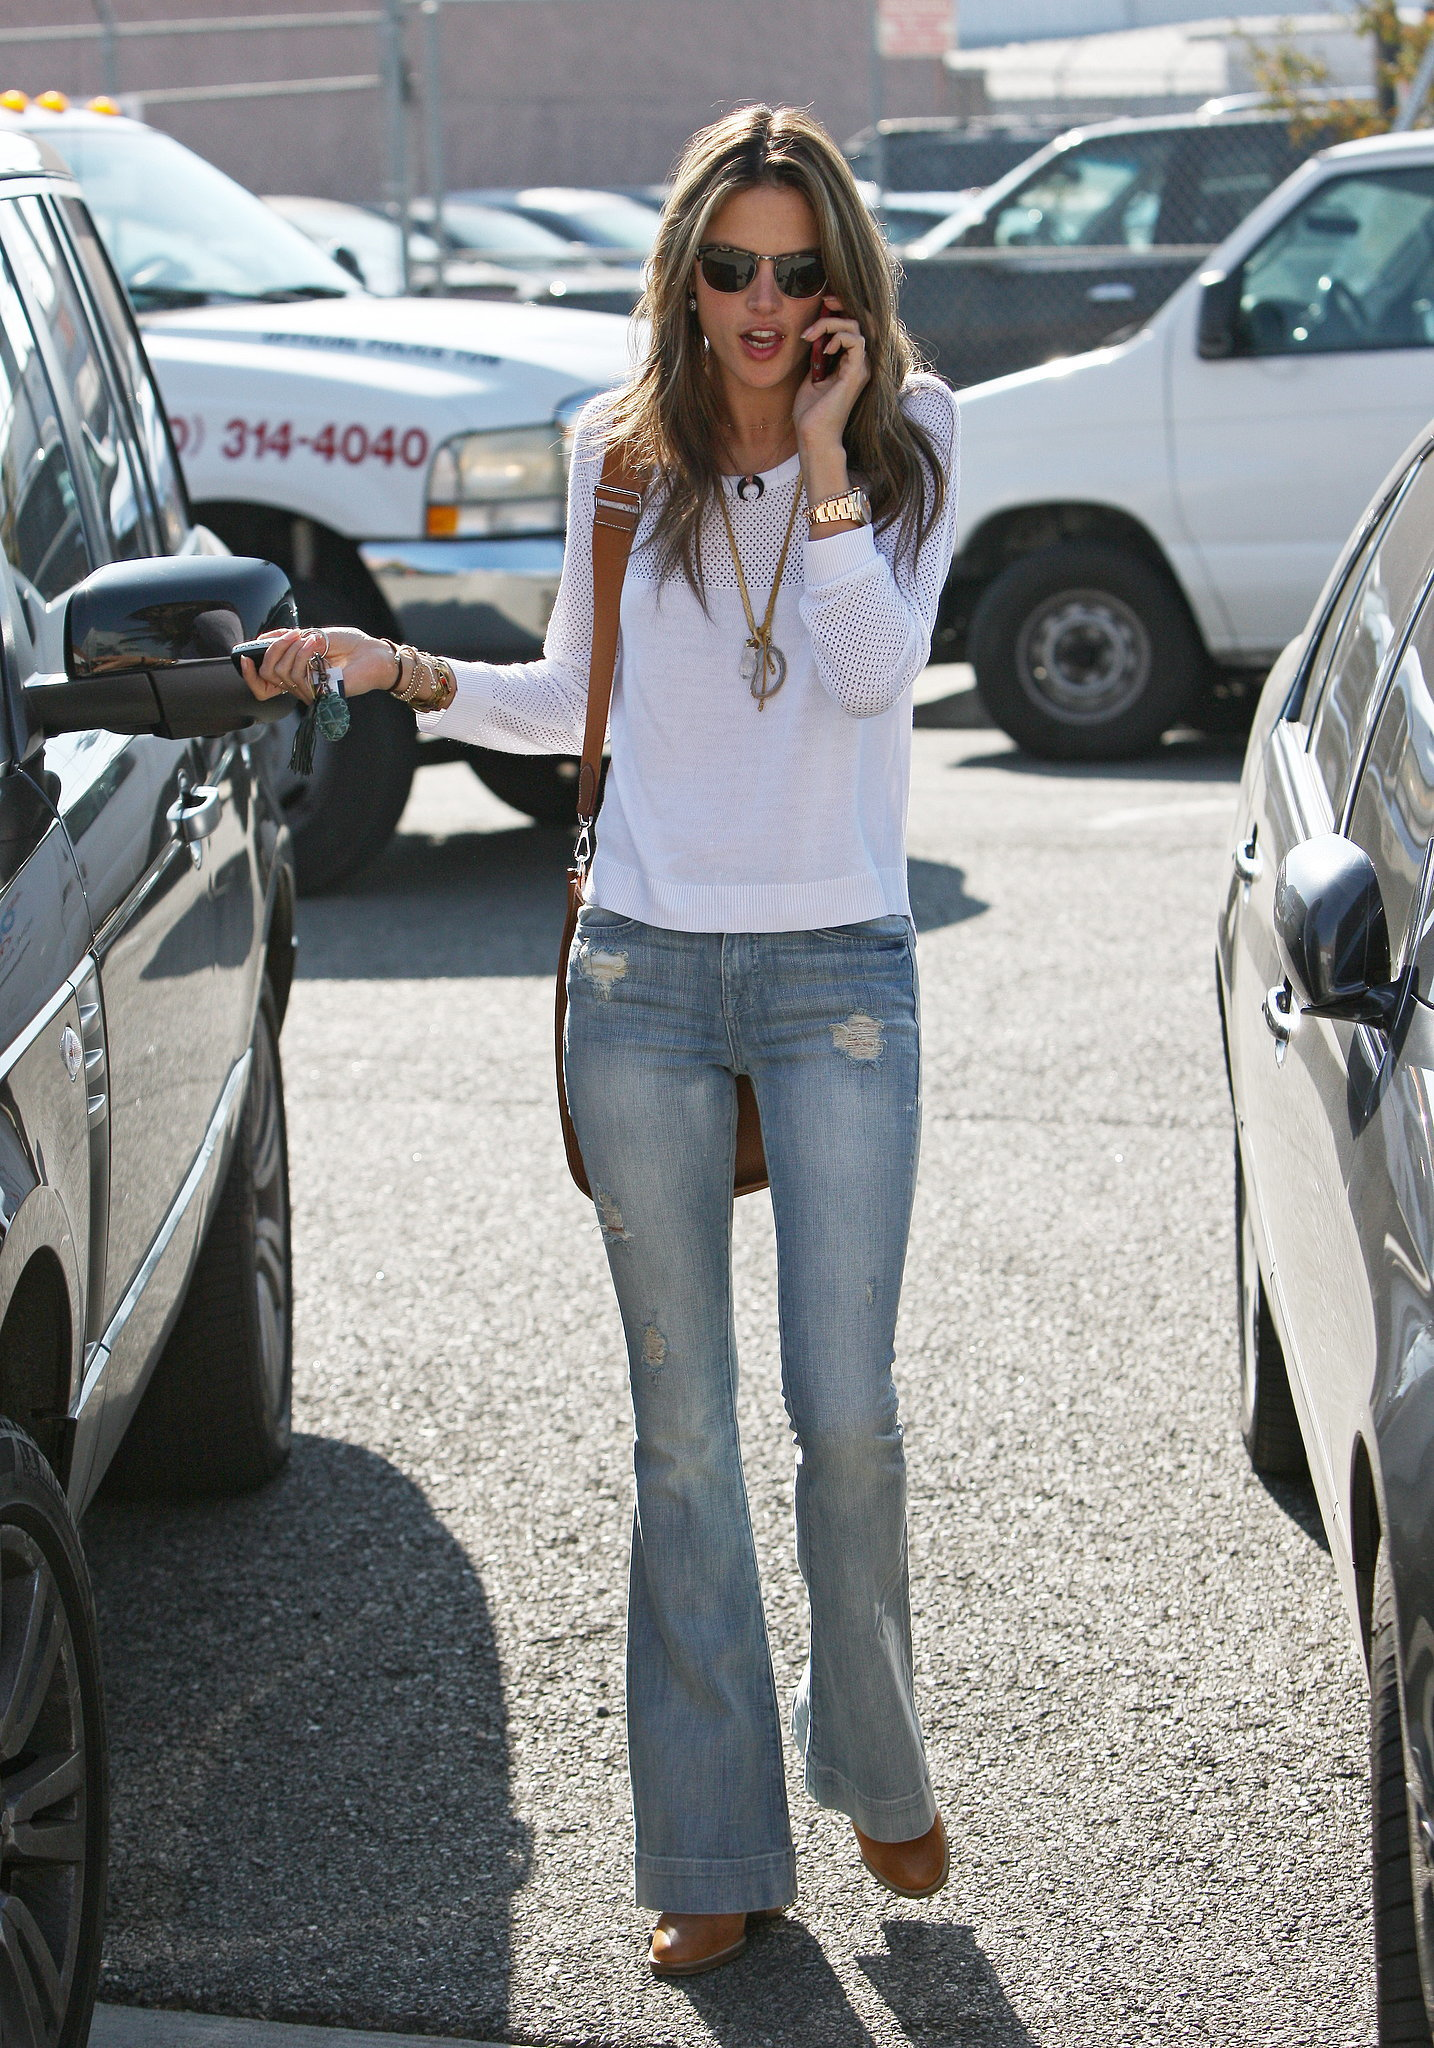 Alessandra picked a pair of light denim flares and a thin